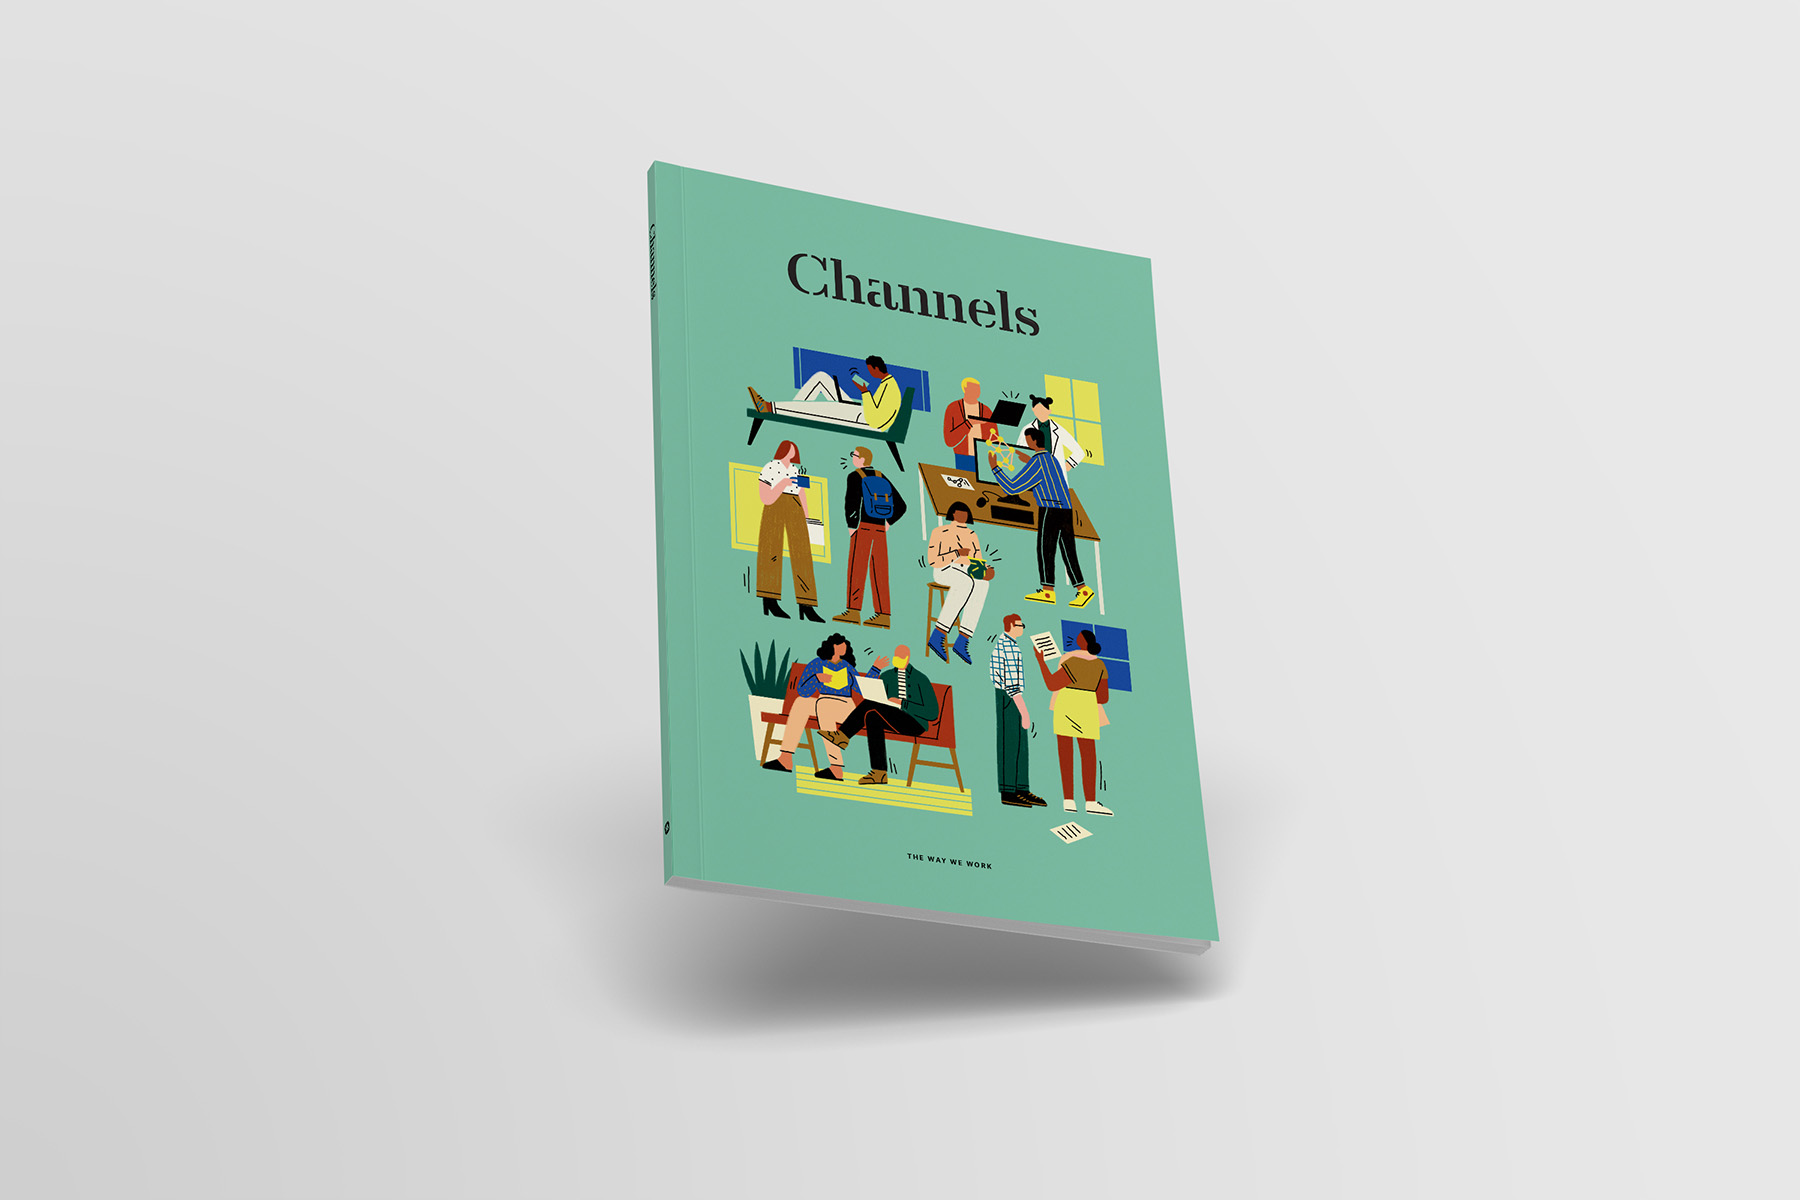 """Cover design of Channels magazine by Slack, """"The Way We Work"""" cover illustration by Abbey Lossing."""